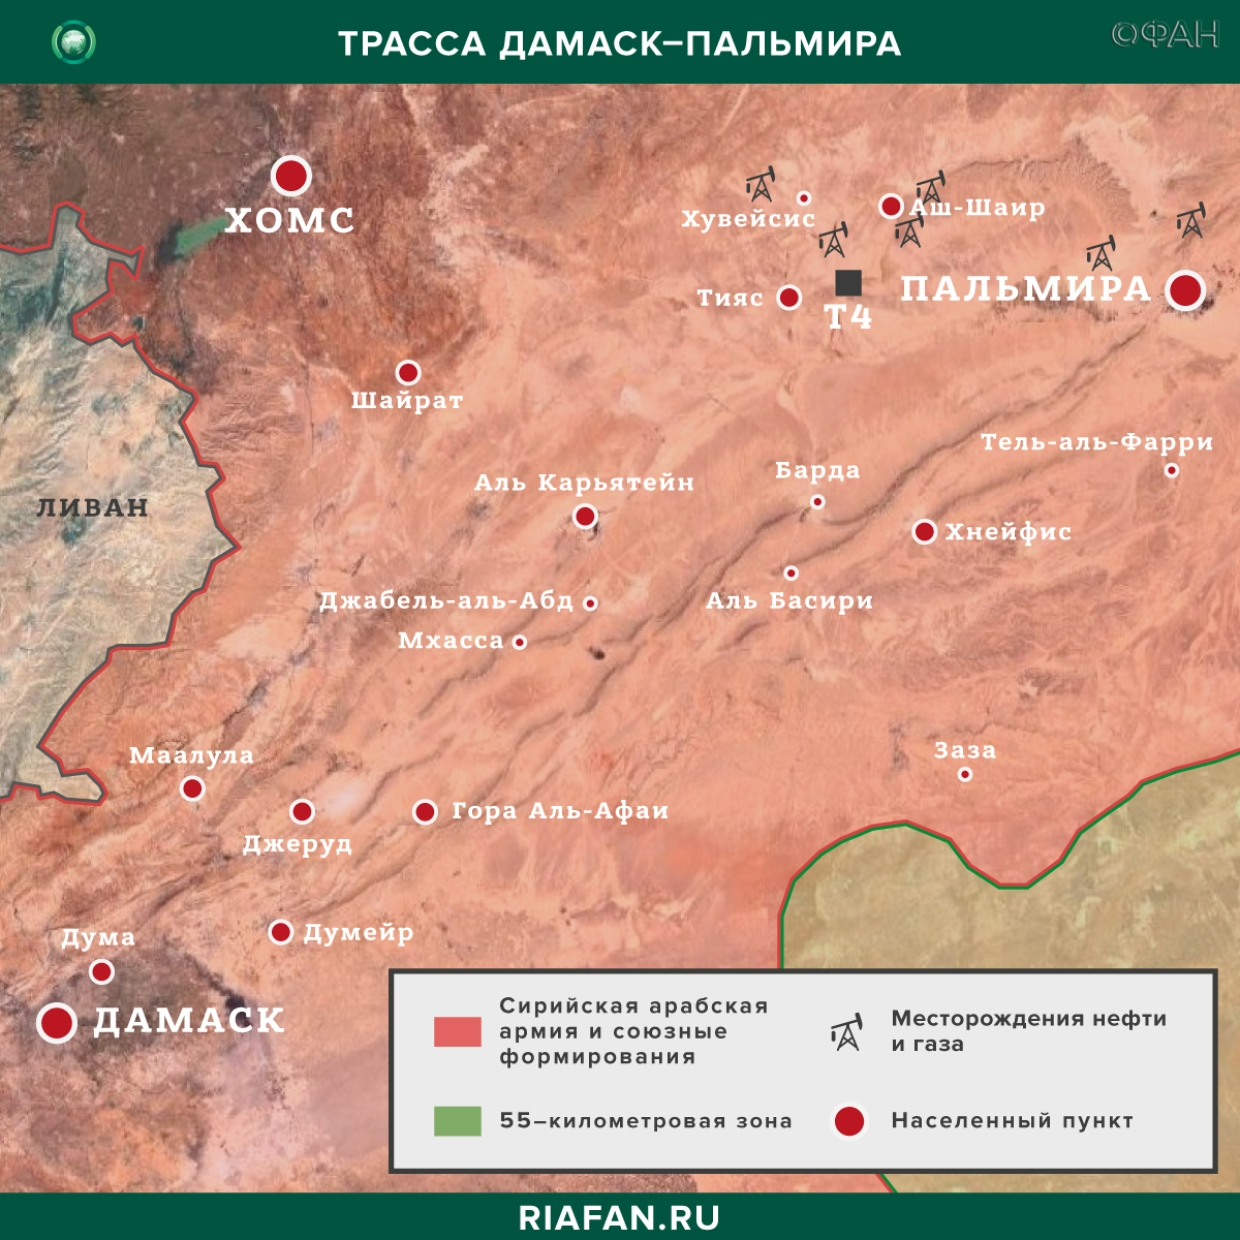 Syria totals on 8 September 06.00: Turkish army sergeant was killed in Idlib